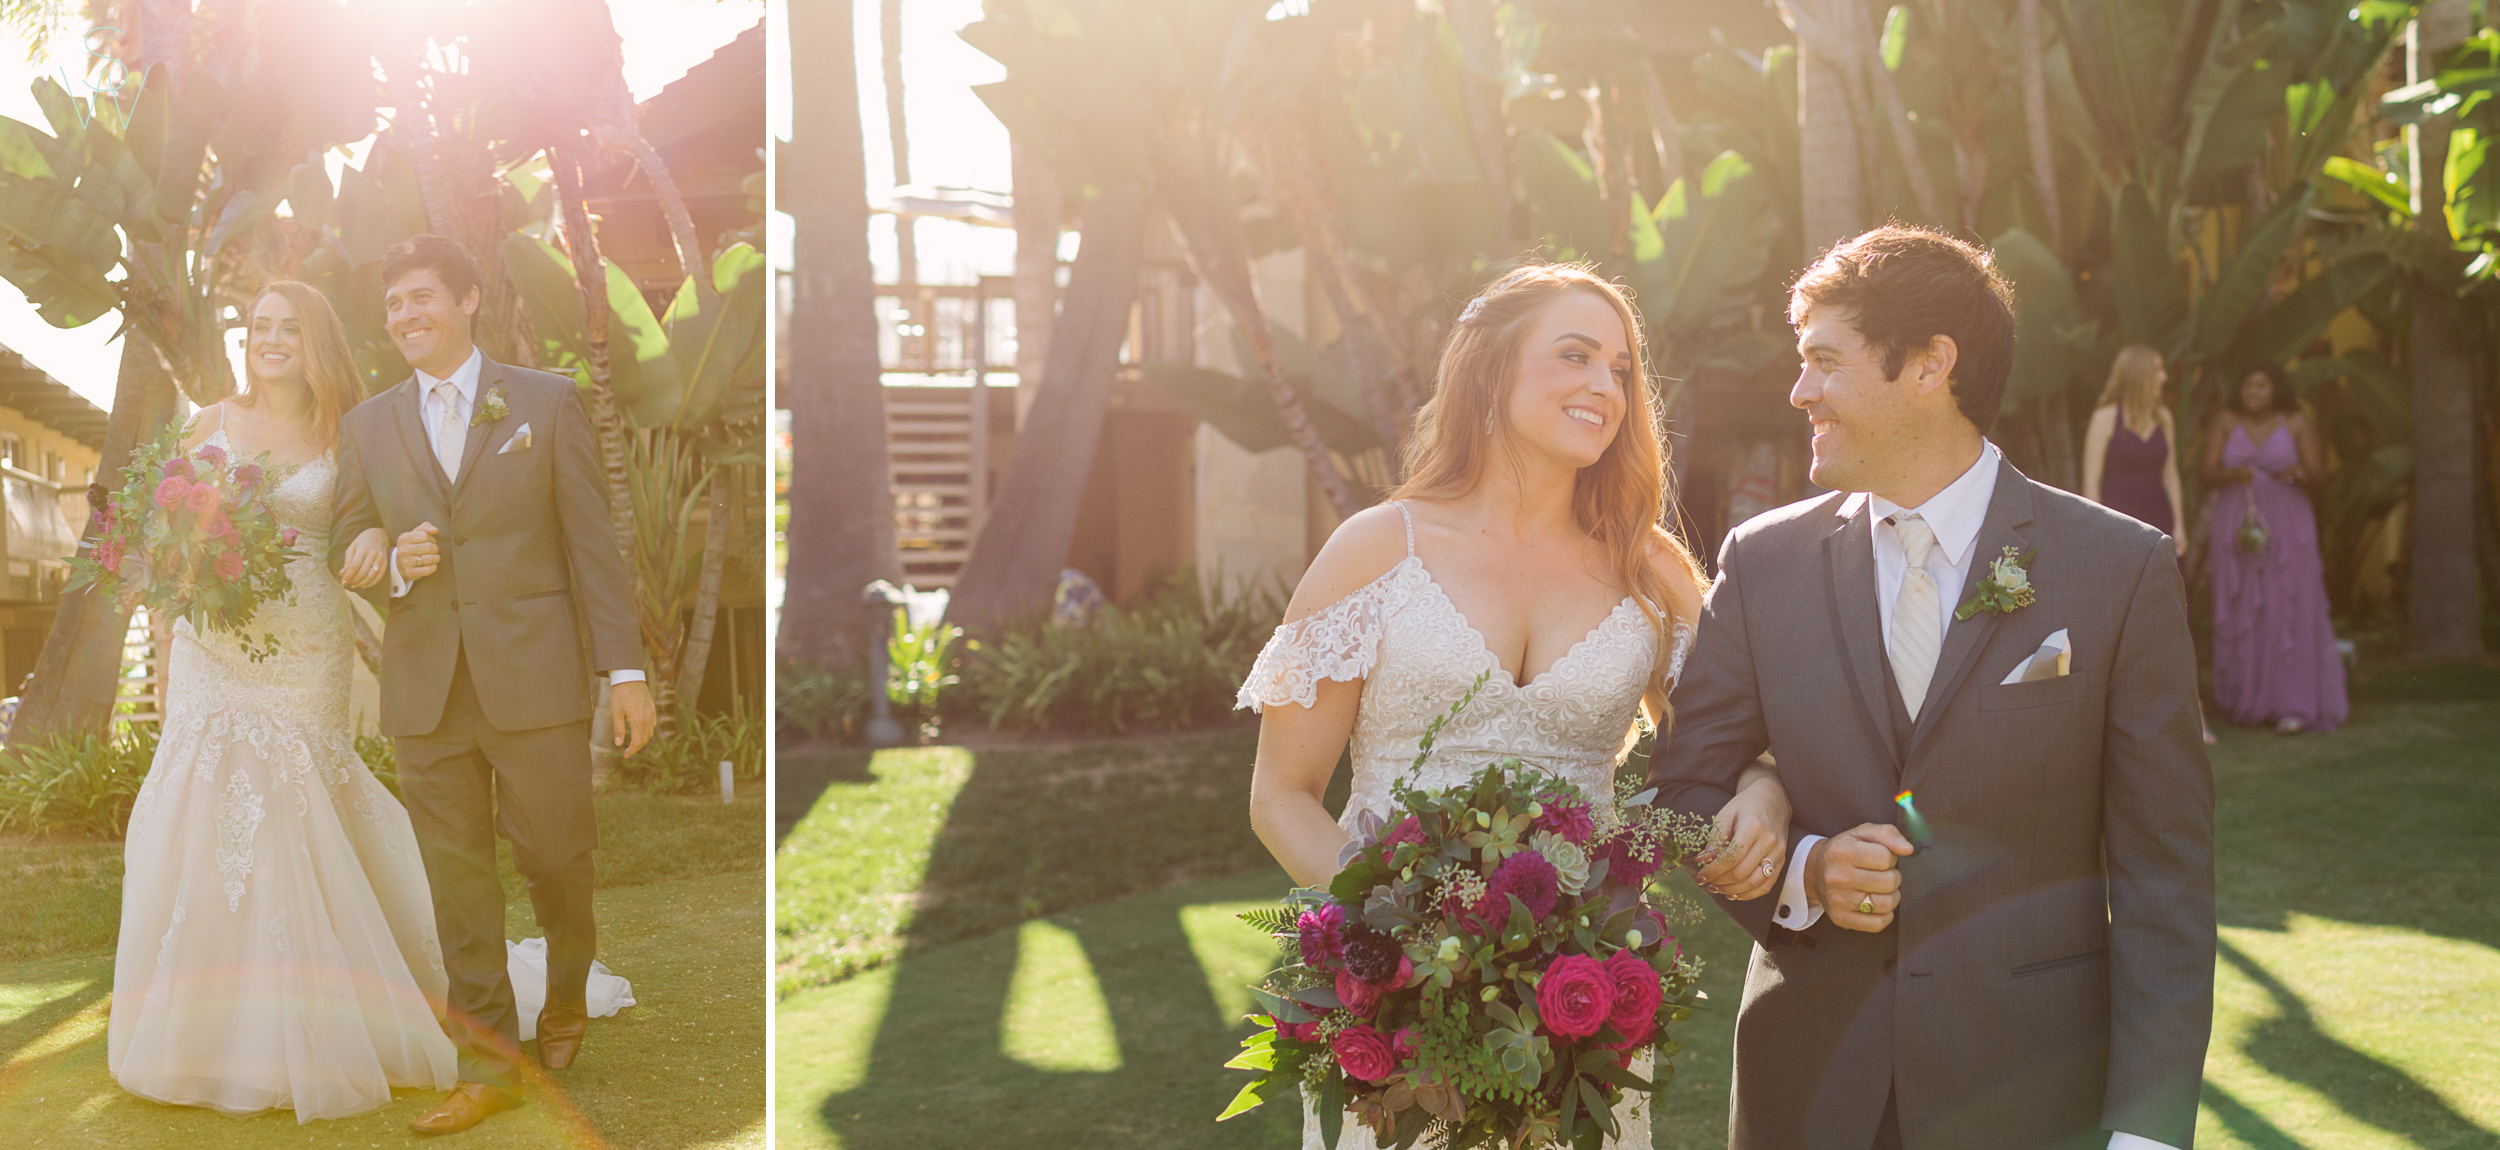 131San.diego.wedding.shewanders.photography.JPG